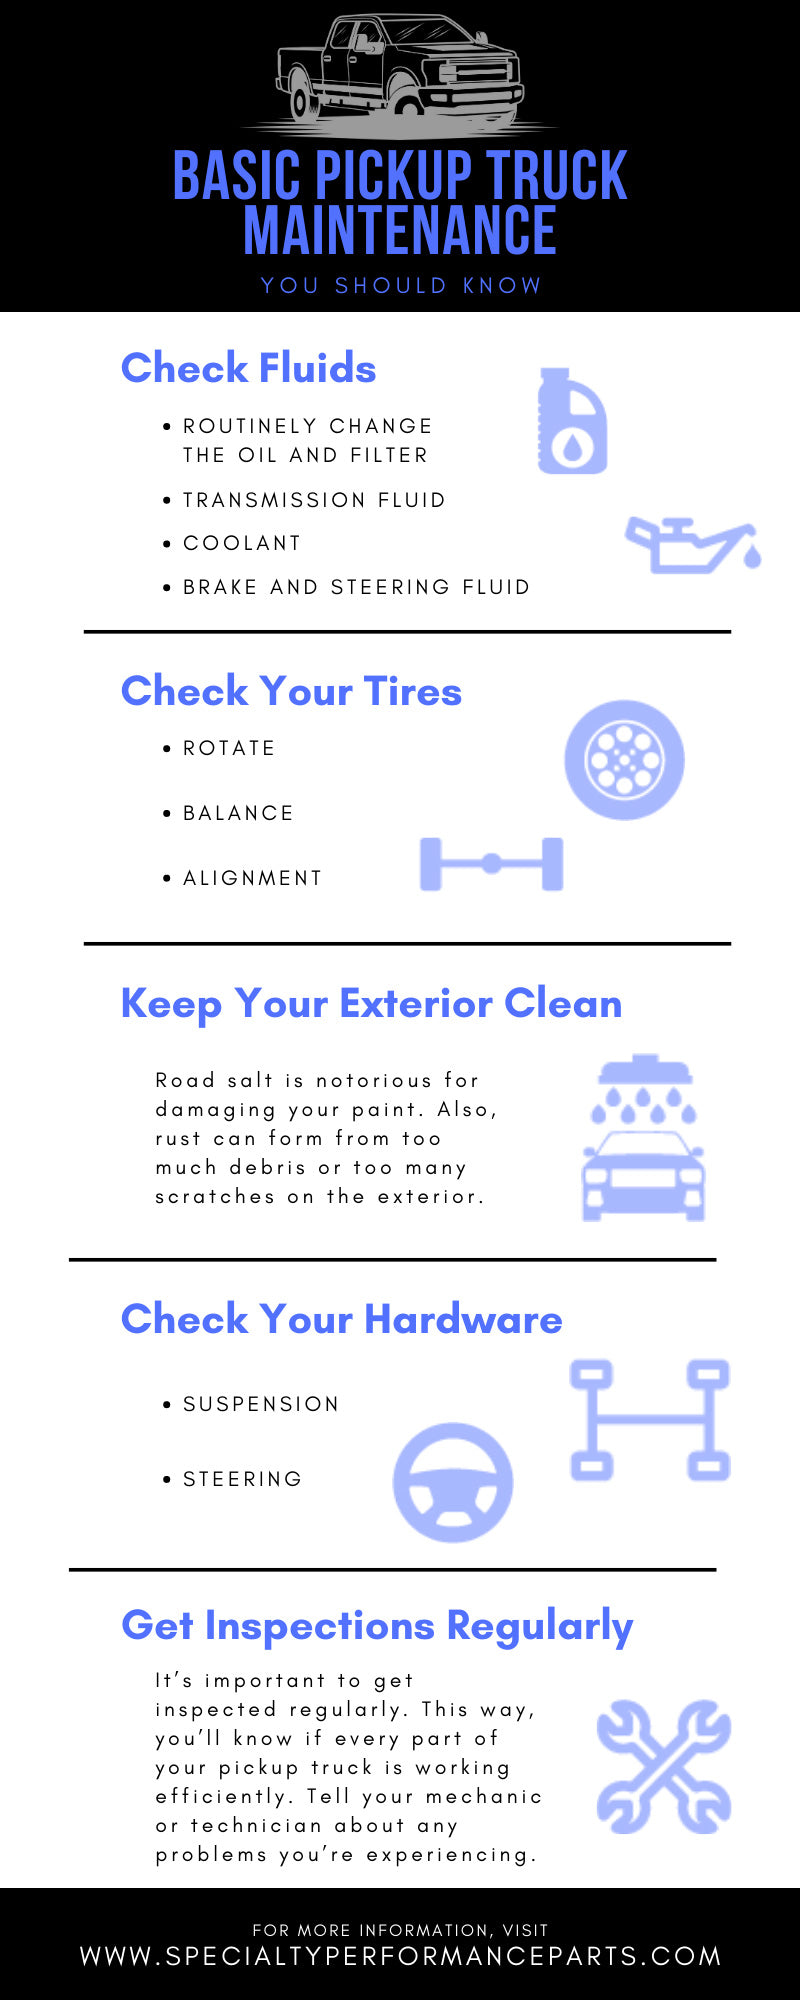 Basic Pickup Truck Maintenance You Should Know infographic